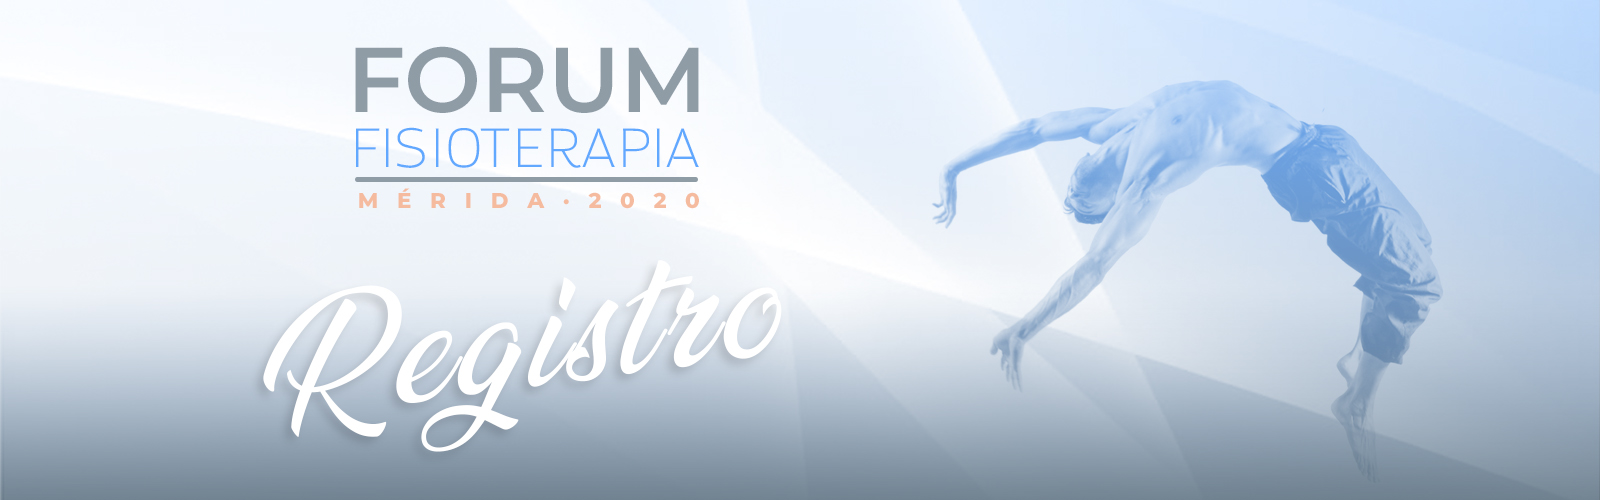 Registro forum fisioterapia 2020